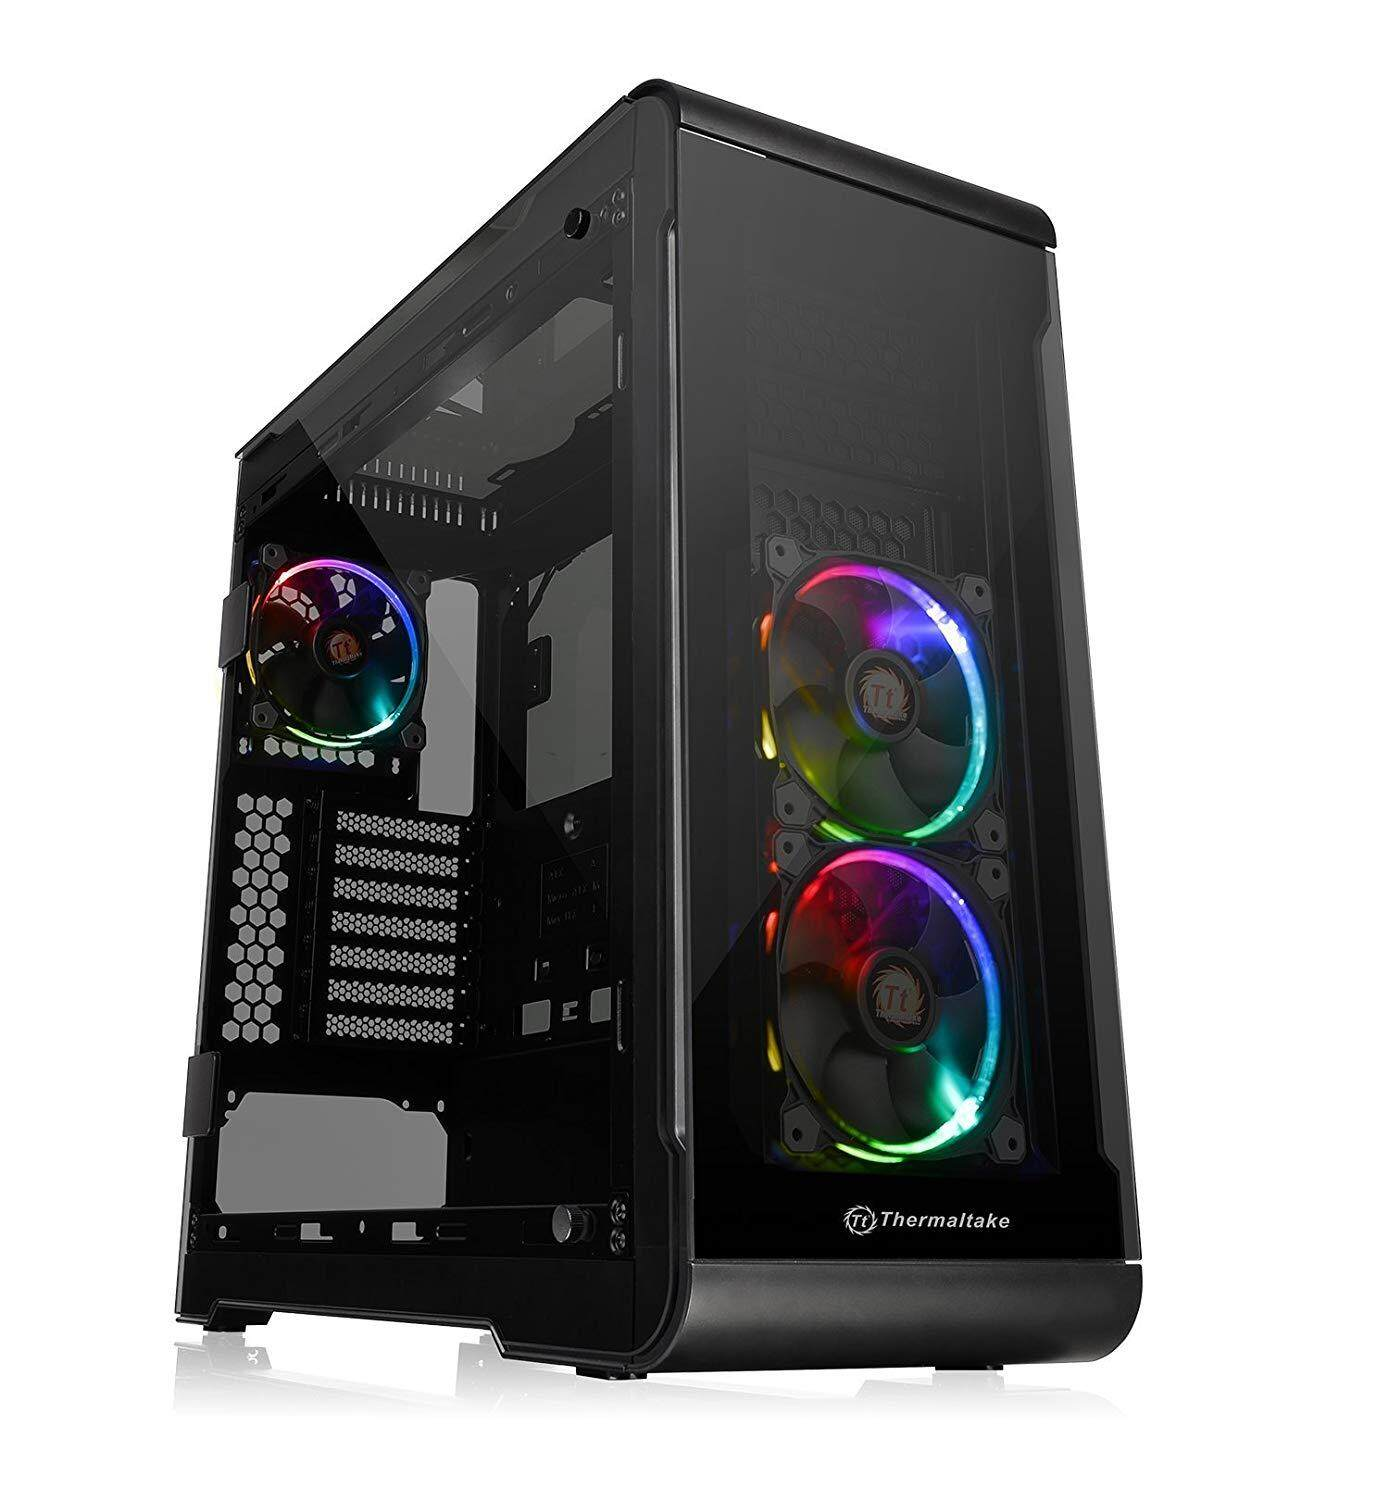 Thermaltake View 32 TG RGB Mid-Tower E-ATX Gaming PC Computer Case (4x Tempered Glass, 3x Pre-installed 120mm RGB Fans) Malaysia